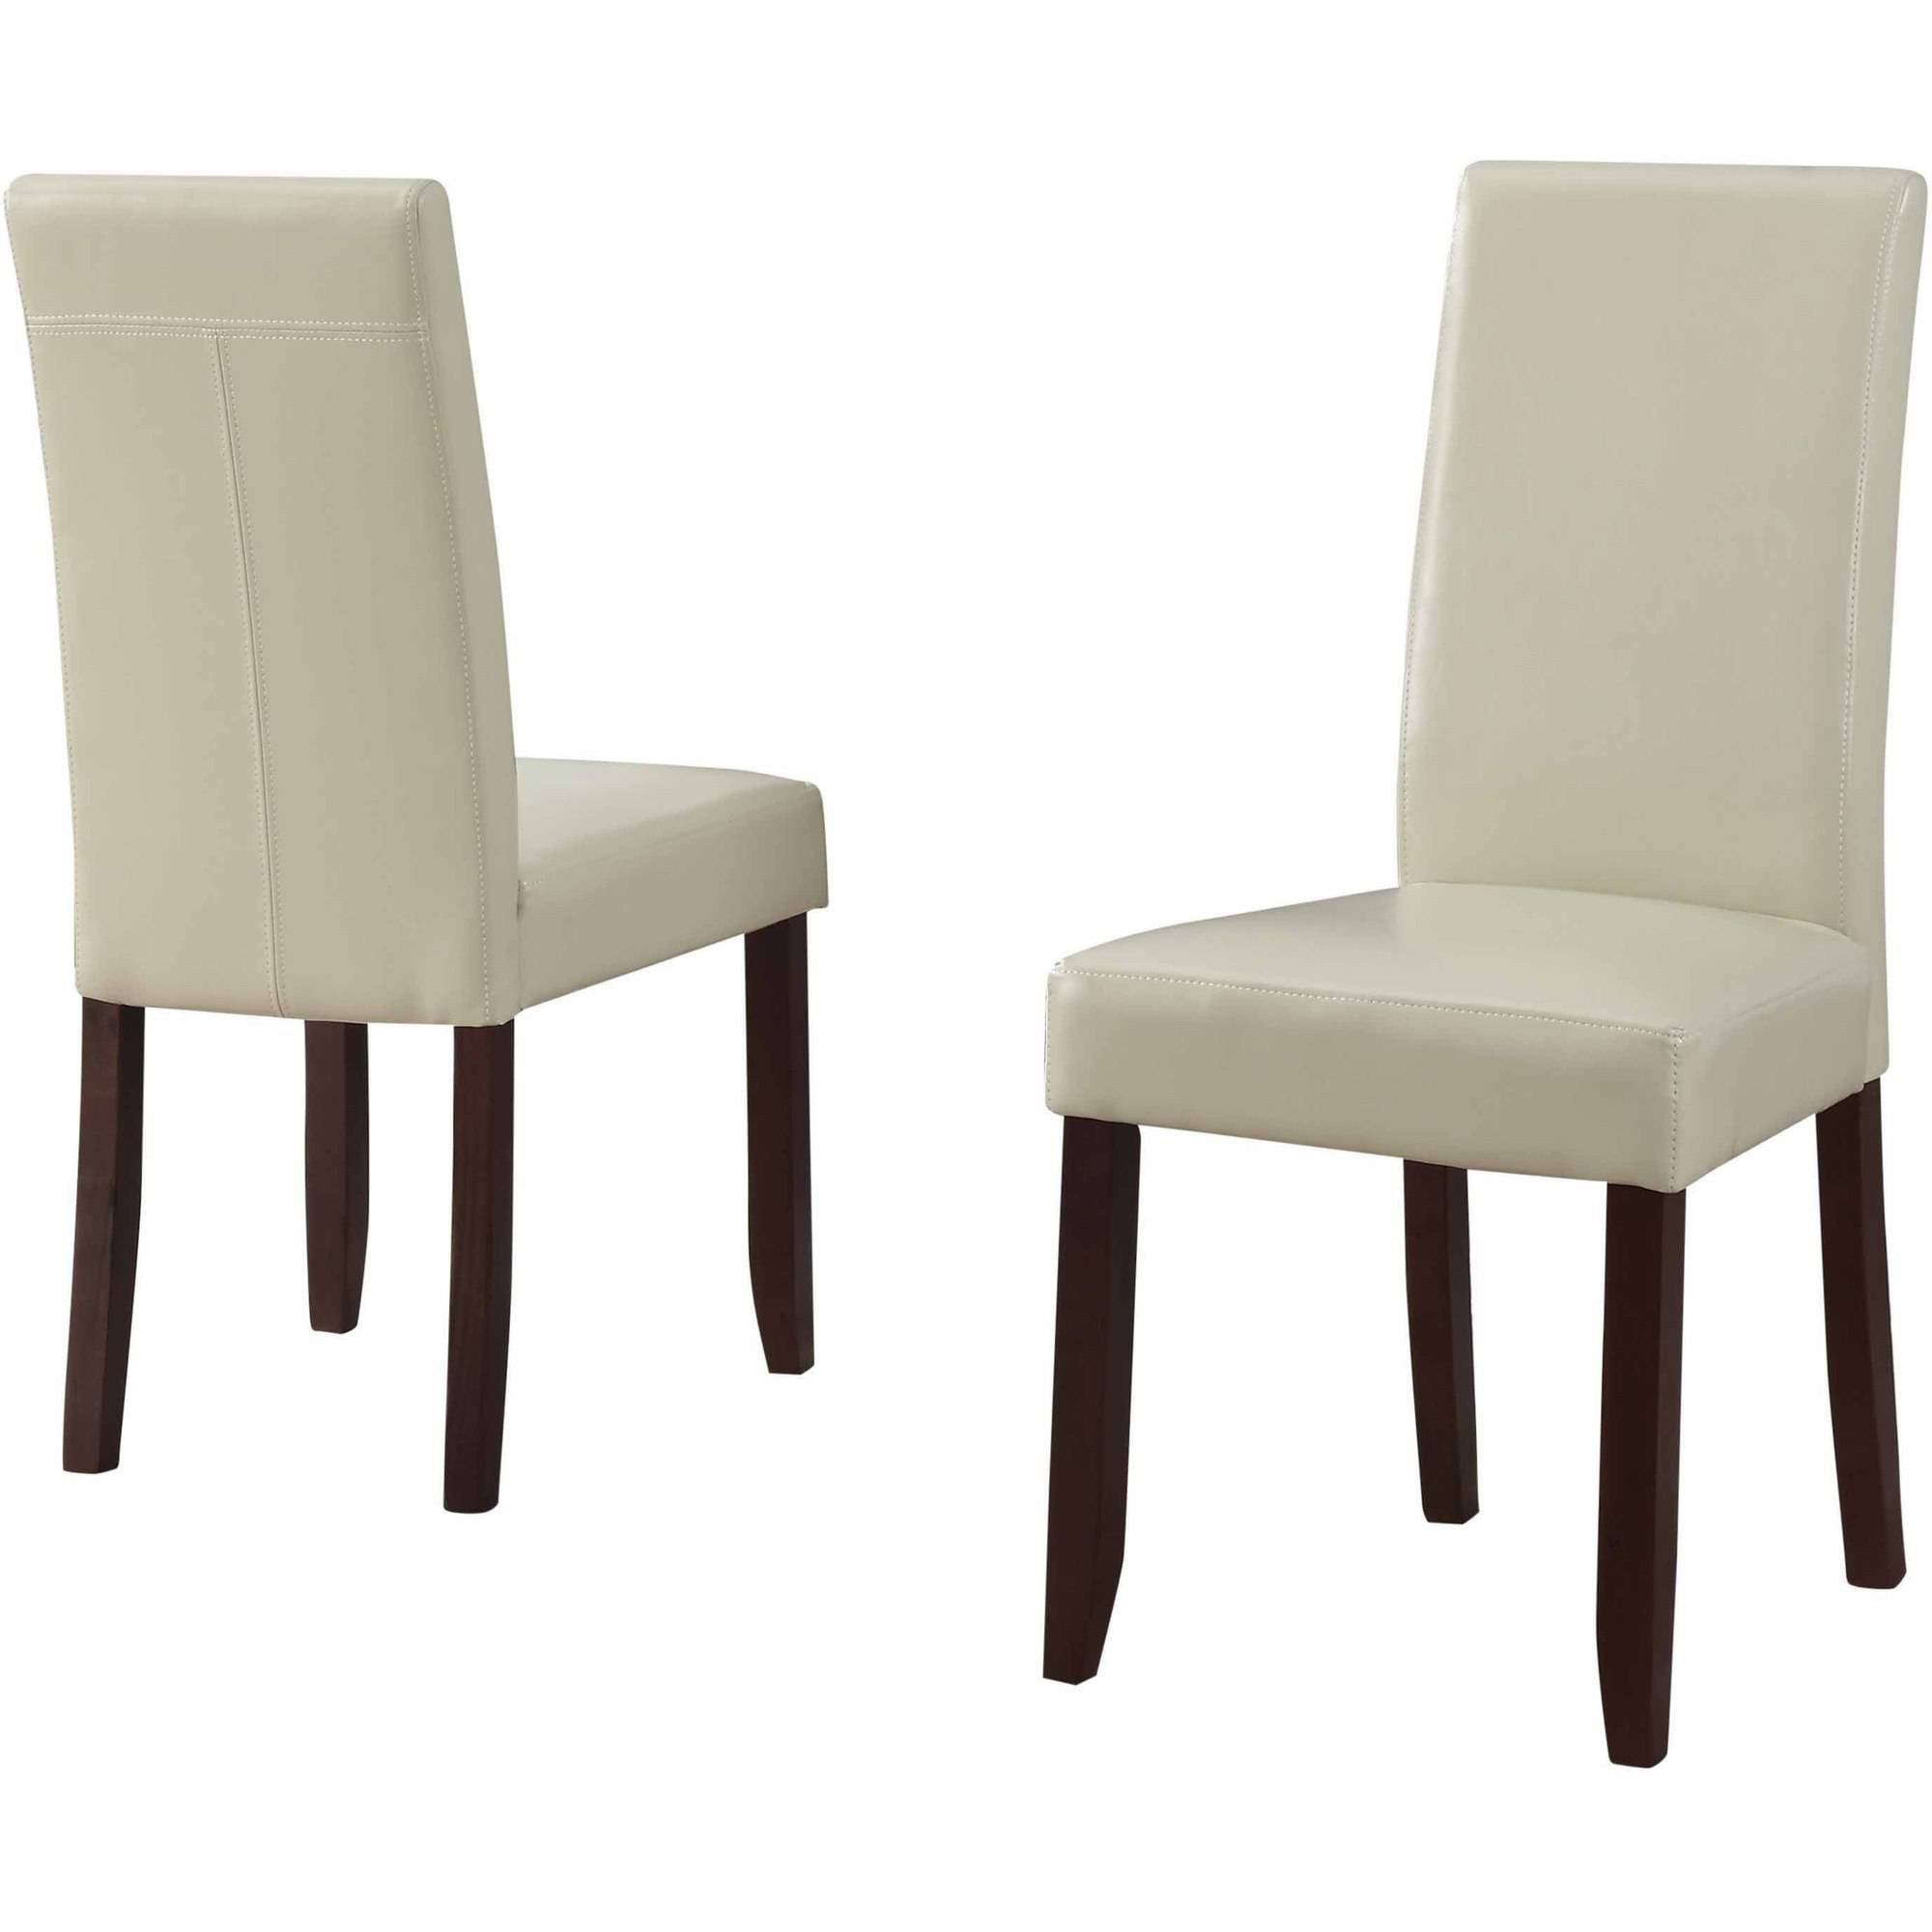 Kitchen & Dining Chairs : Kitchen & Dining Furniture - Walmart.com ...